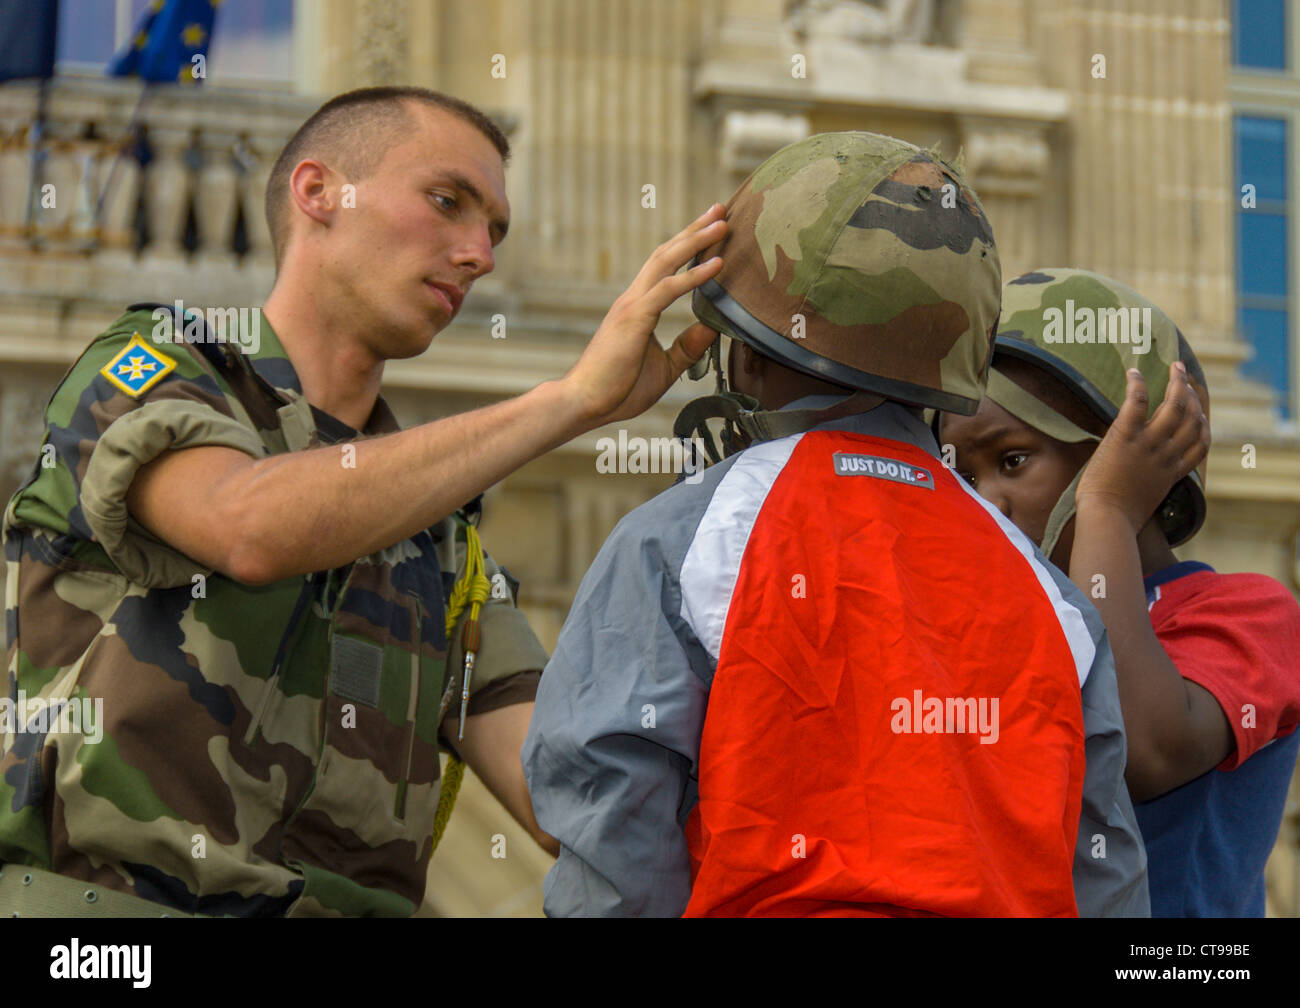 """Public Events, National Day, """"Bastille Day"""", 14th of July, Children Military on Public Square, Young Boys Trying Stock Photo"""